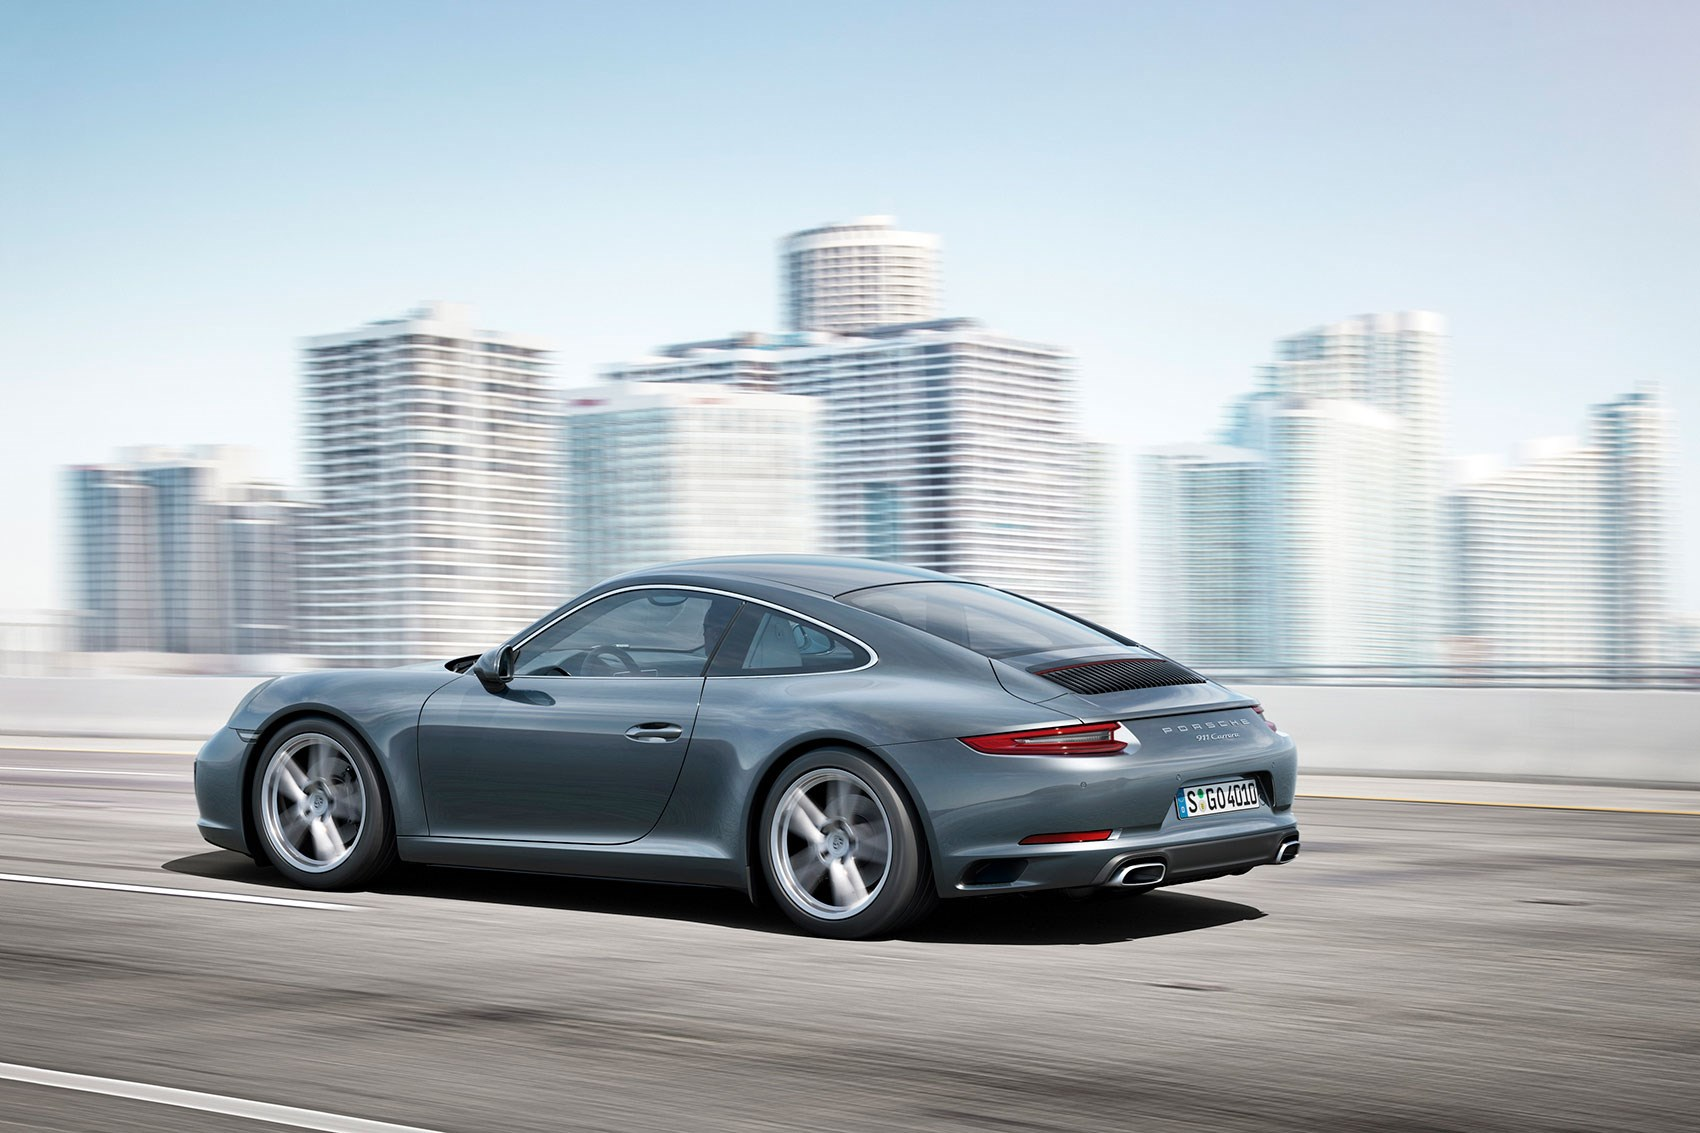 new 2016 porsche 911 blows in turbos all round for 991. Black Bedroom Furniture Sets. Home Design Ideas